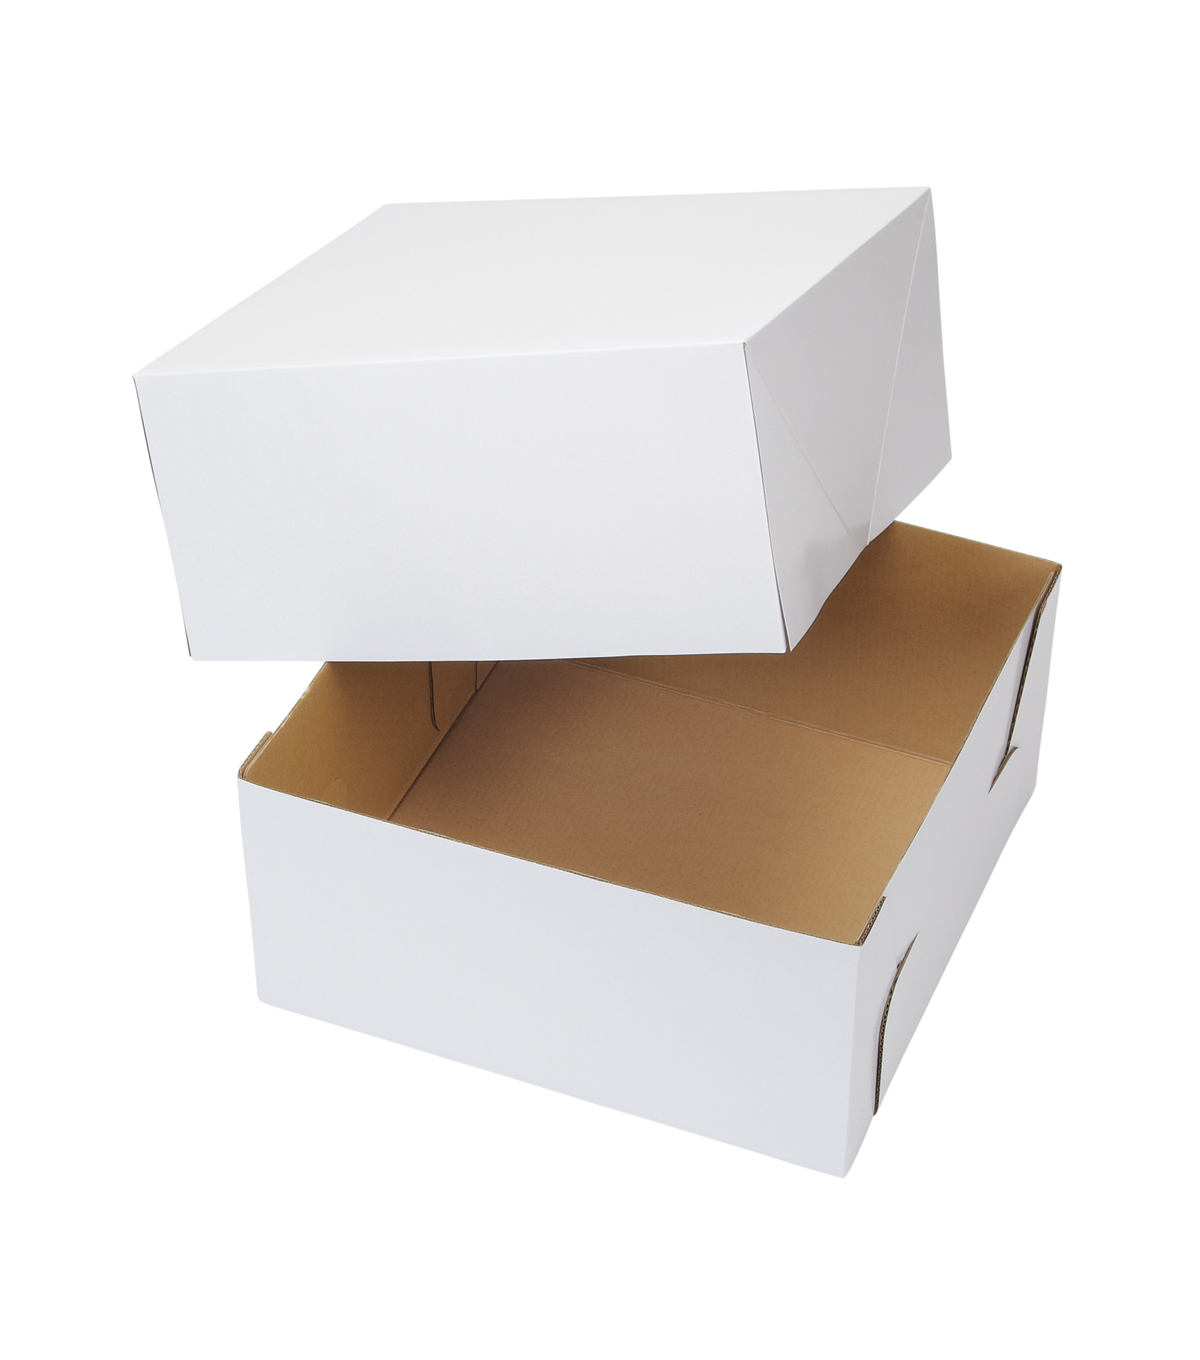 Wilton 12-Inch White Square Corrugated Cake Box, 2-Count Bakery Boxes